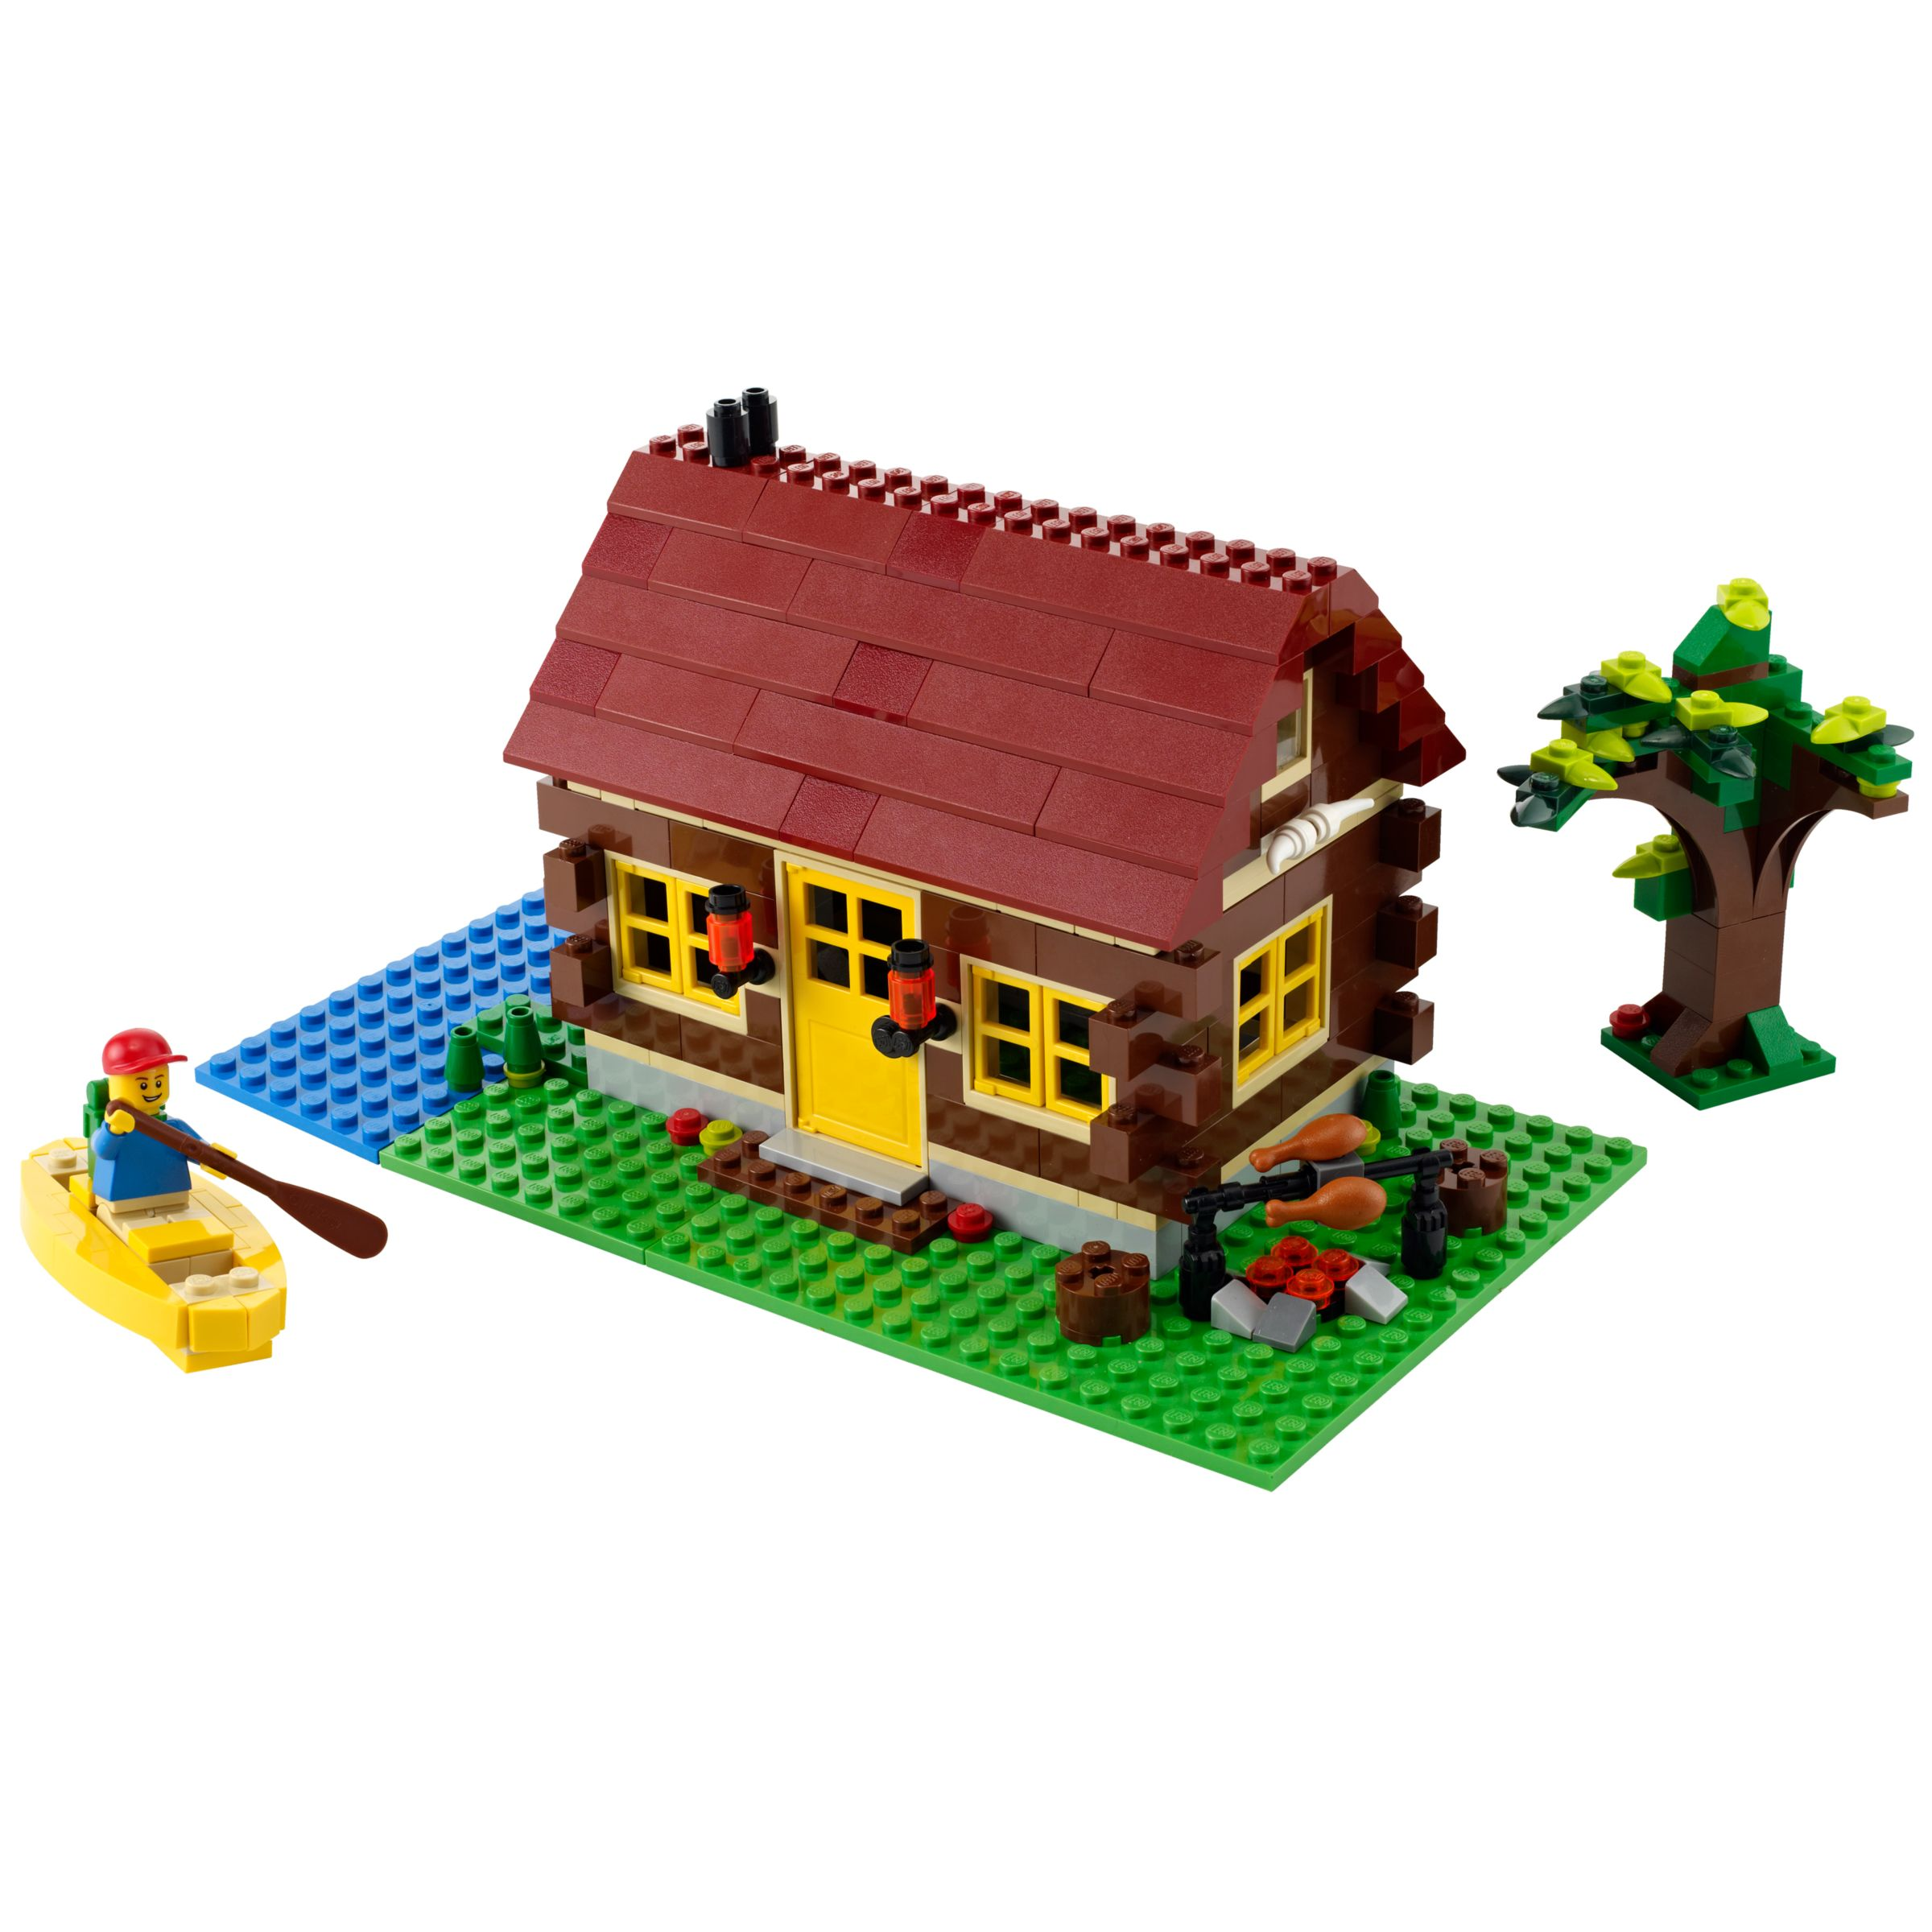 Lego Creator 3 in 1 Log Cabin Building Kit